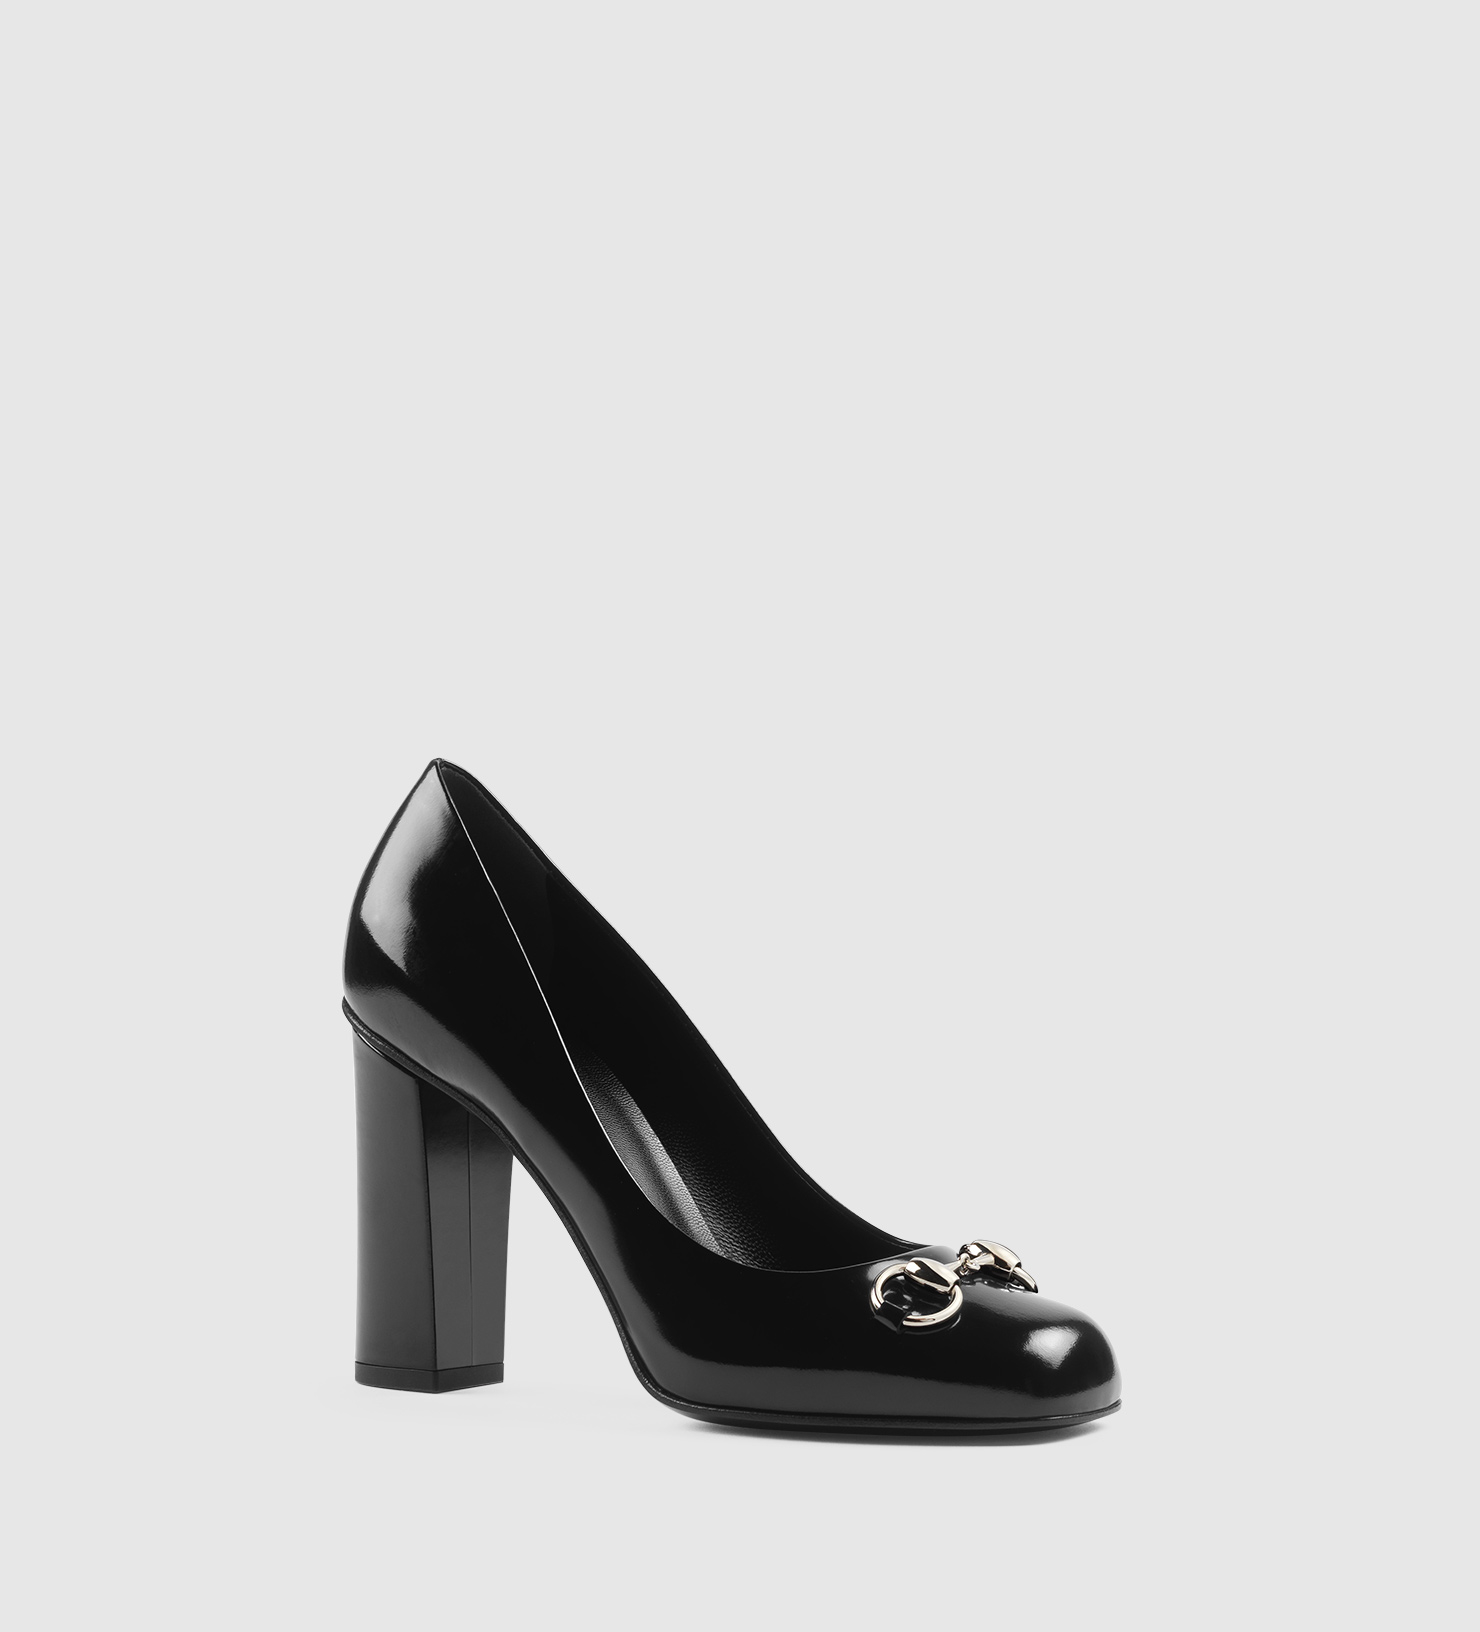 c4762daaa73 Gucci Polished Leather Horsebit Loafer Pump in Black - Lyst